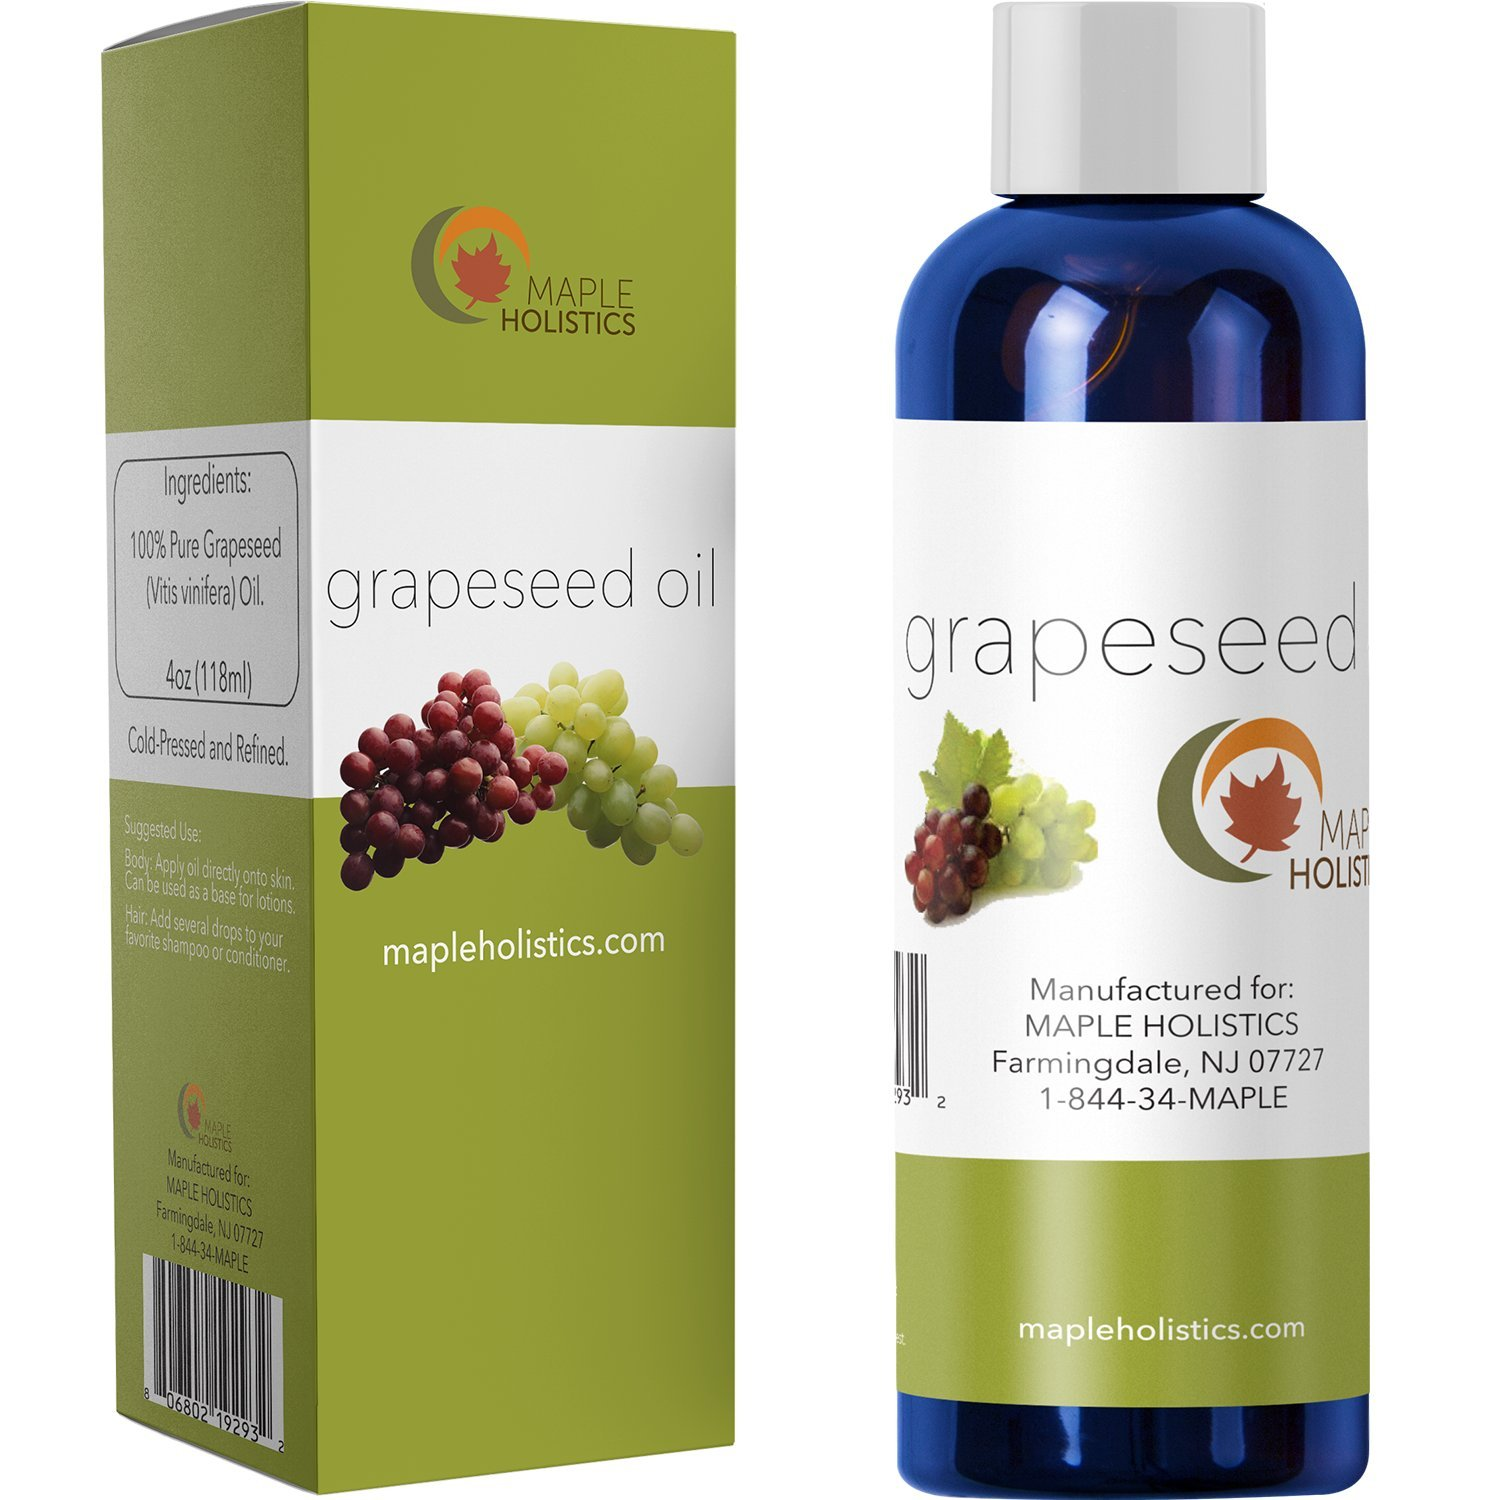 Pure Grapeseed Oil for Hair, Face & Acne - Cold Pressed & 100% Pure for Highest Efficacy - Great Massage Oil Base - Use to Prevent Aging & Wrinkles - 4 Oz - USA Made By Maple Holistics